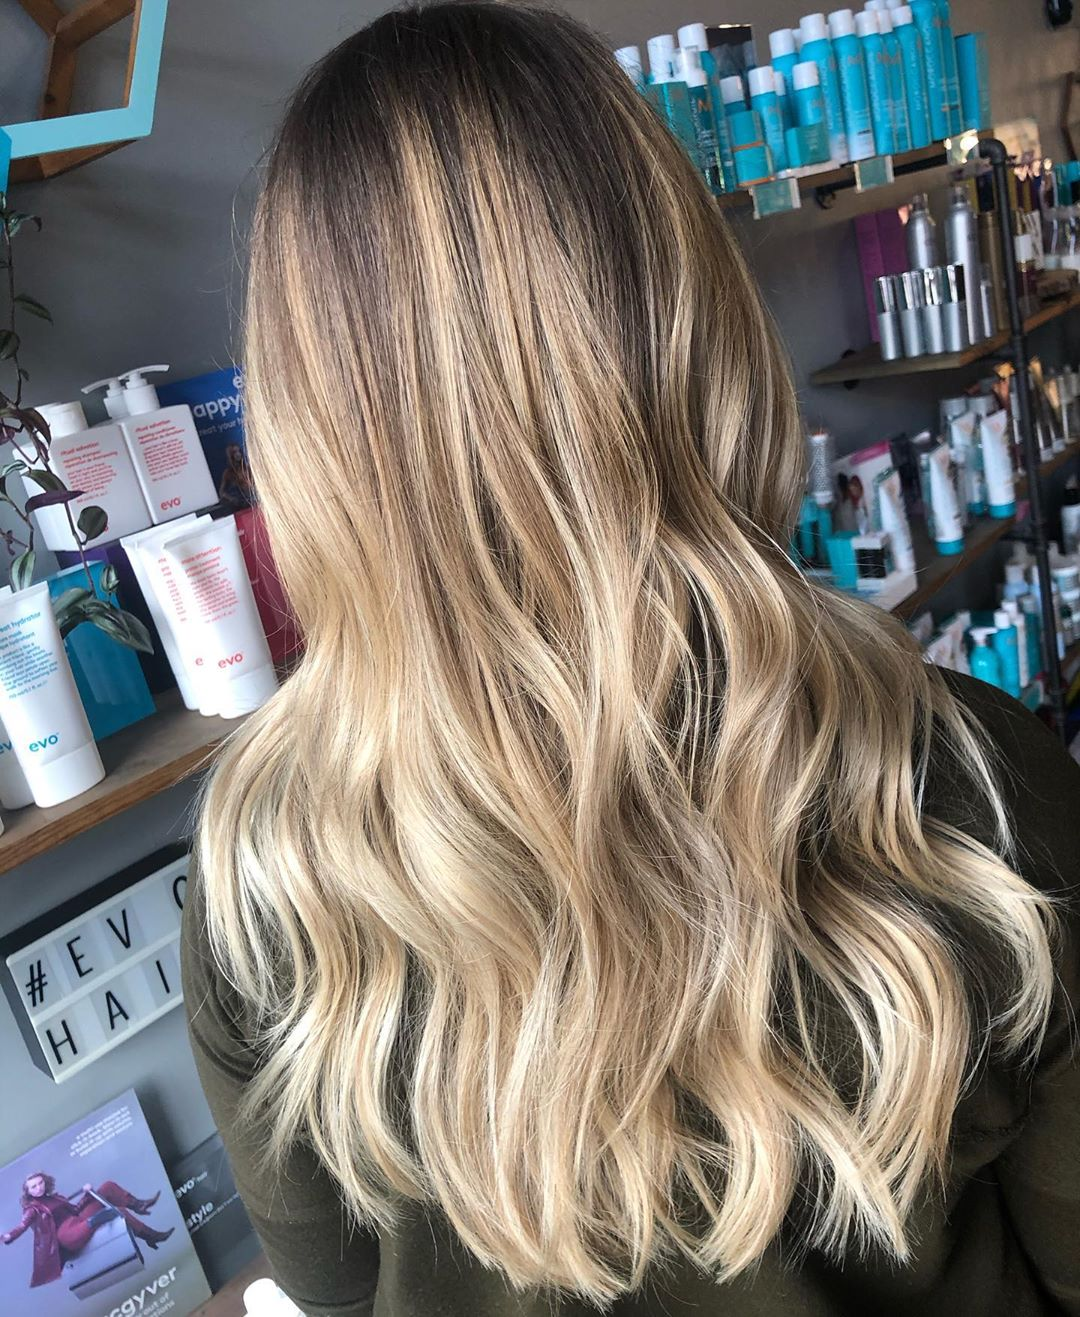 balayage ombre hairstyles 10 9 New Blonde Balayage Hairstyles You'll Love!